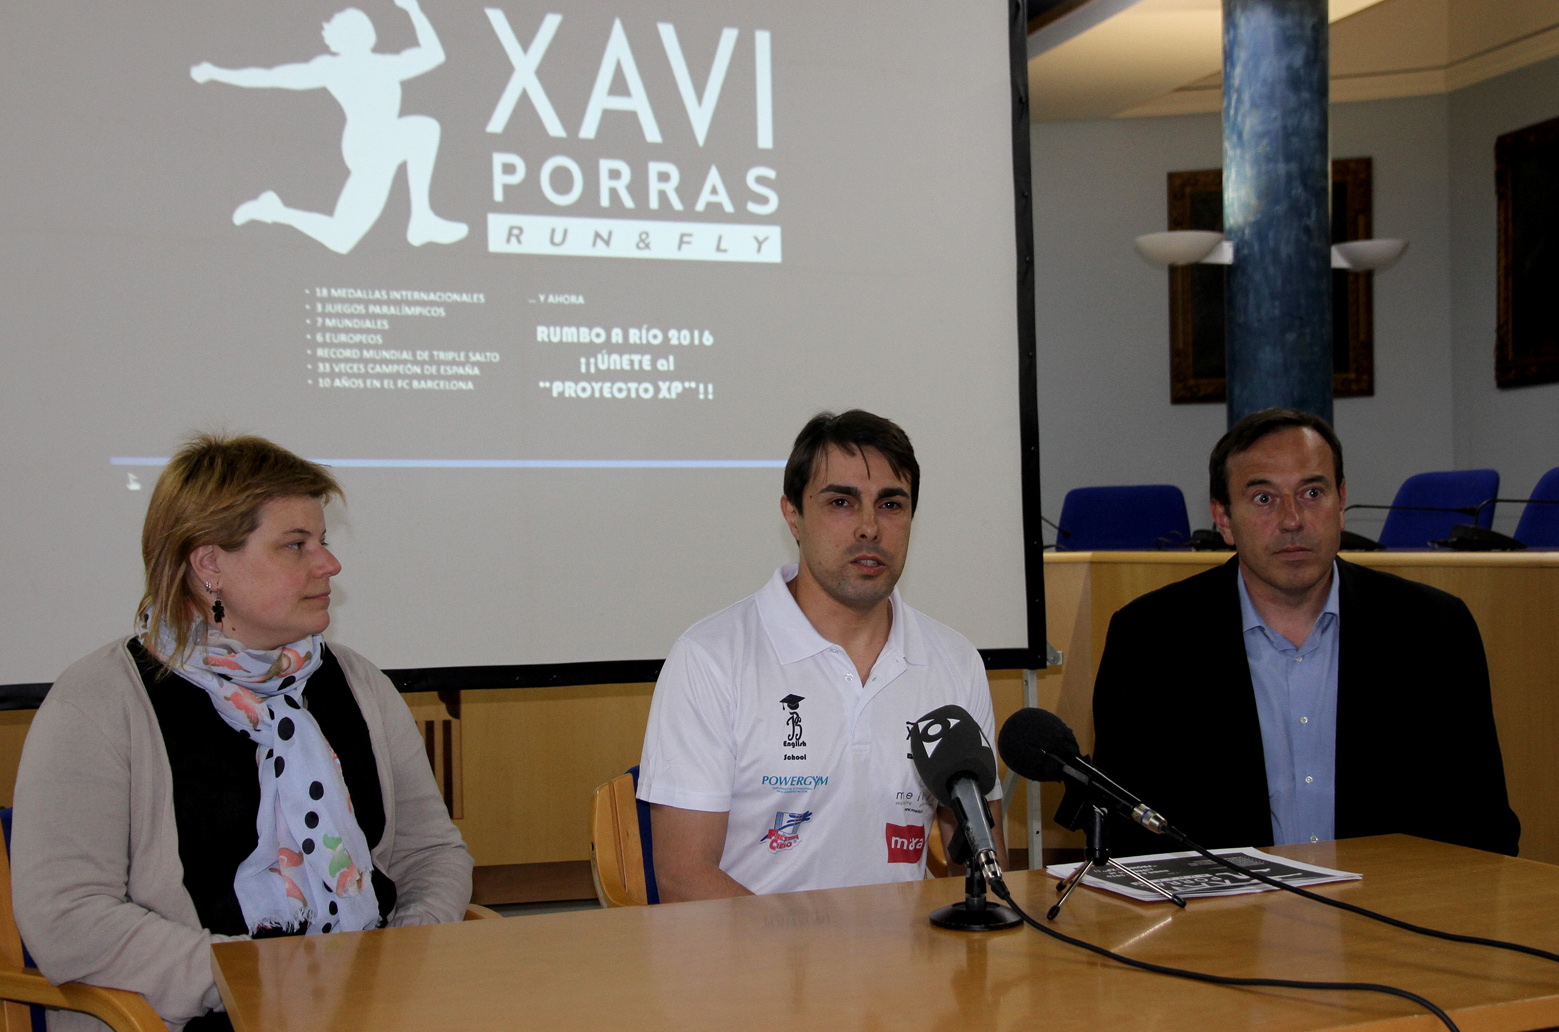 Image of Xavi Porras with the Deputy Mayor and Councilor of Sports from Olot